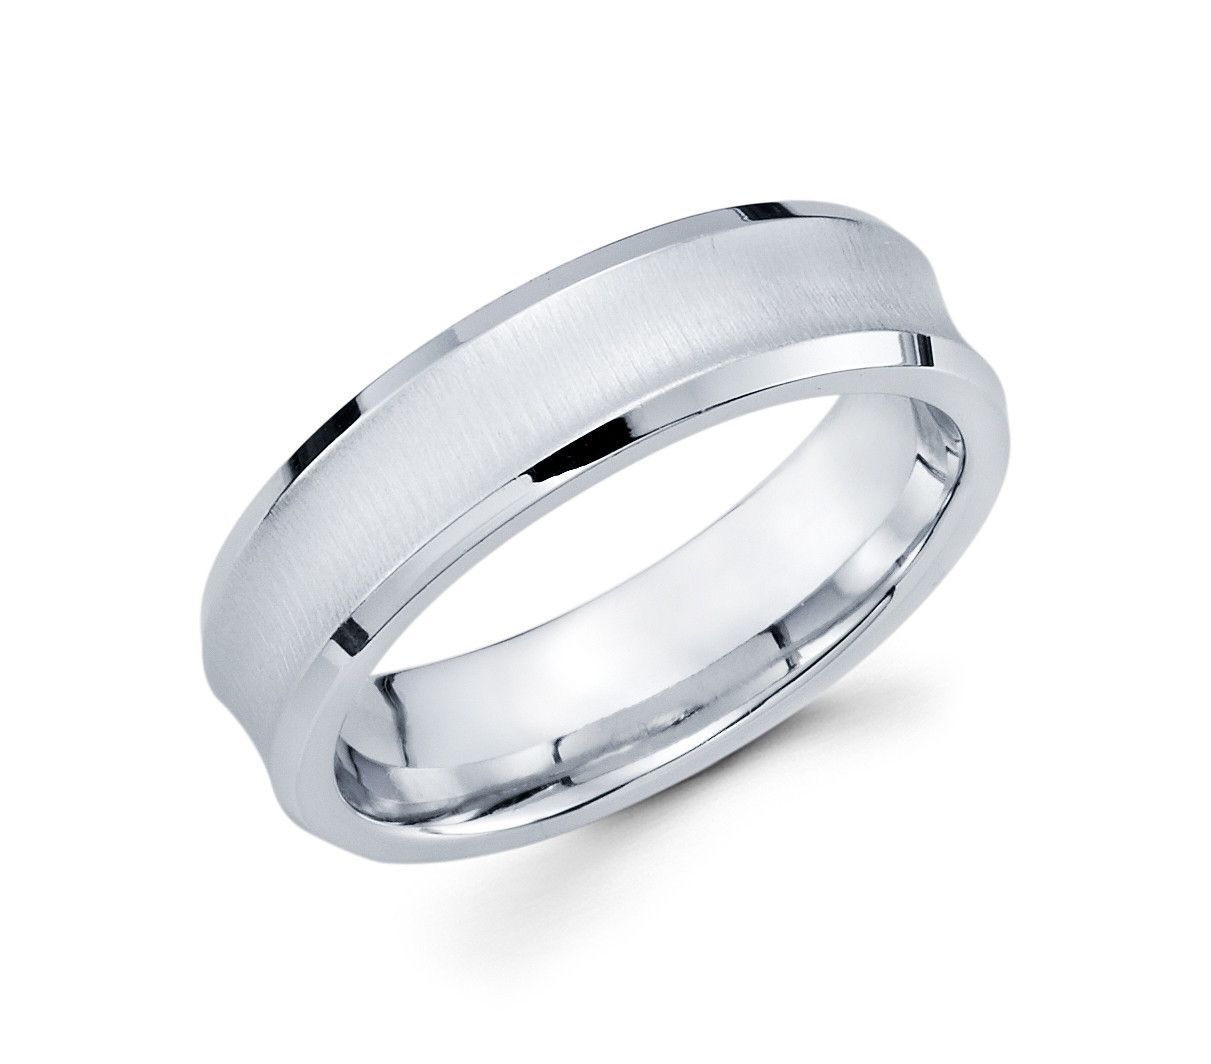 14k White Gold Brushed Finish With Concave Design And Polished Edges 6mm Modern Wedding Band For: Concave Brushed Wedding Band At Websimilar.org